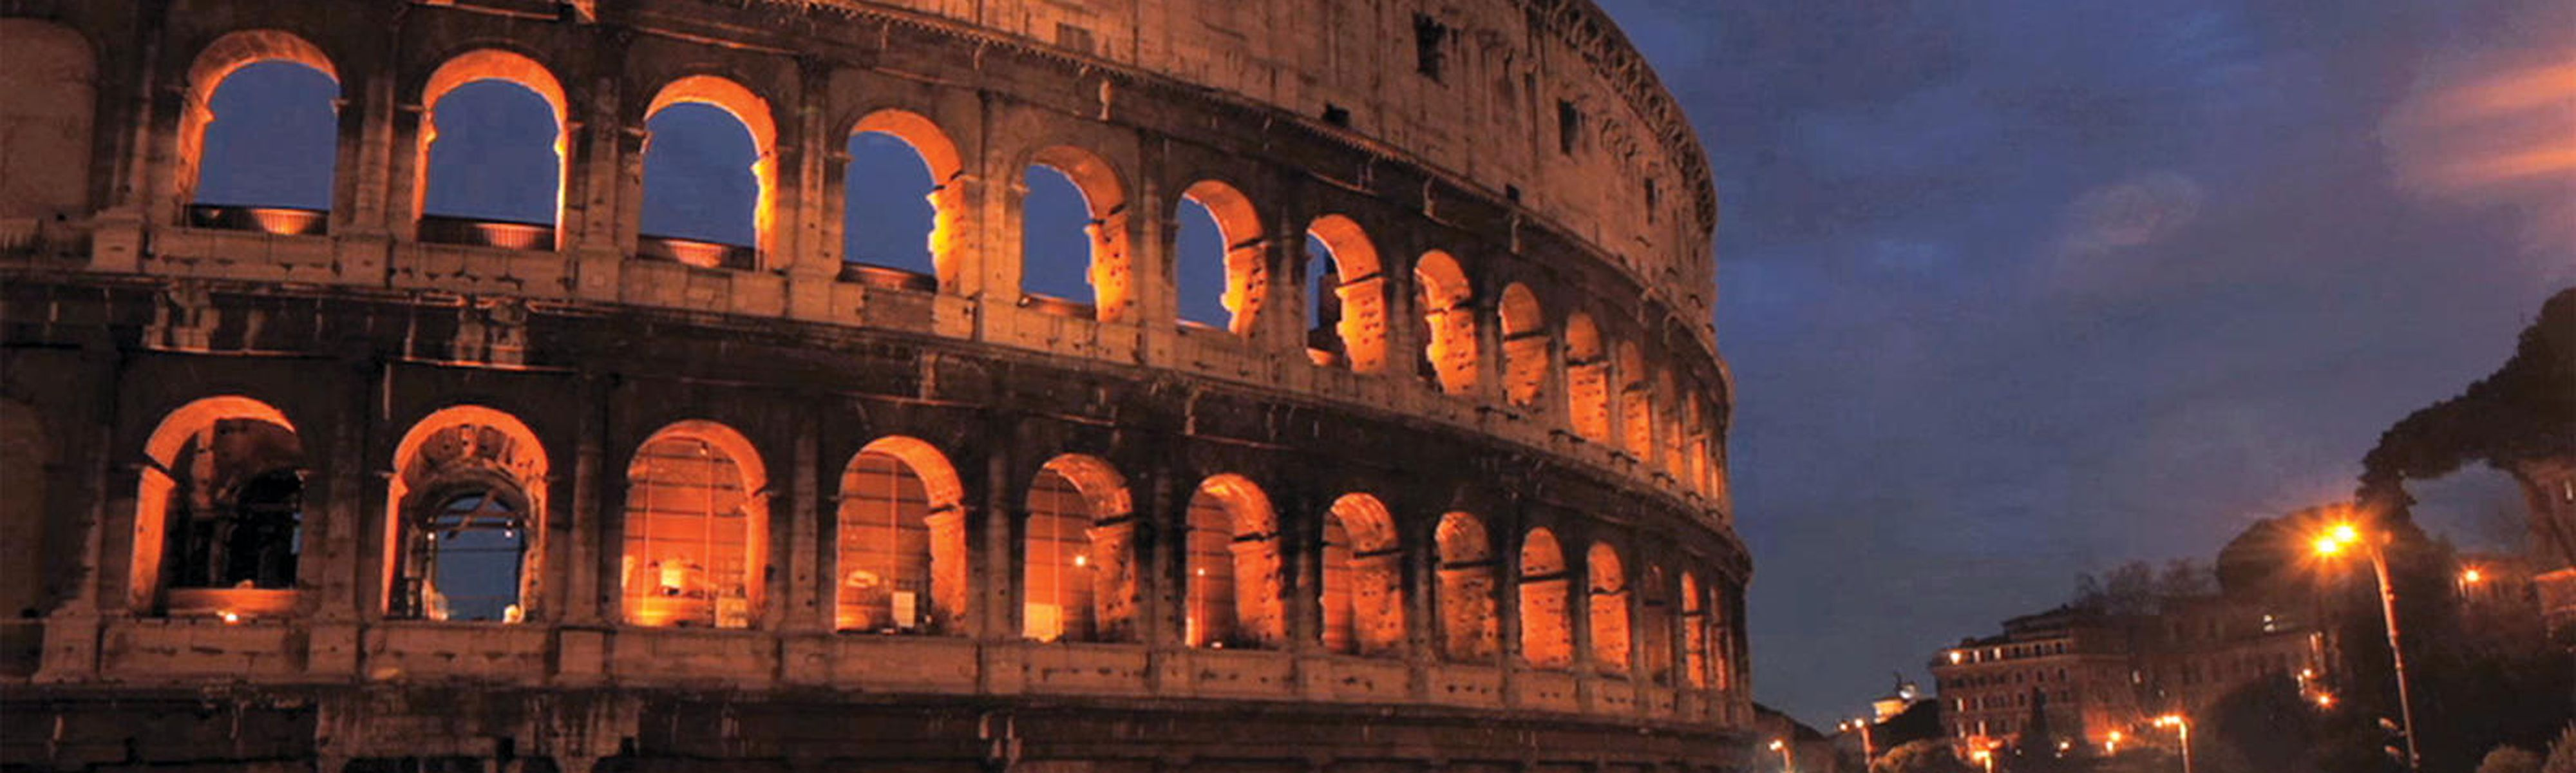 Rome: The City Experience   EF Go Ahead Tours